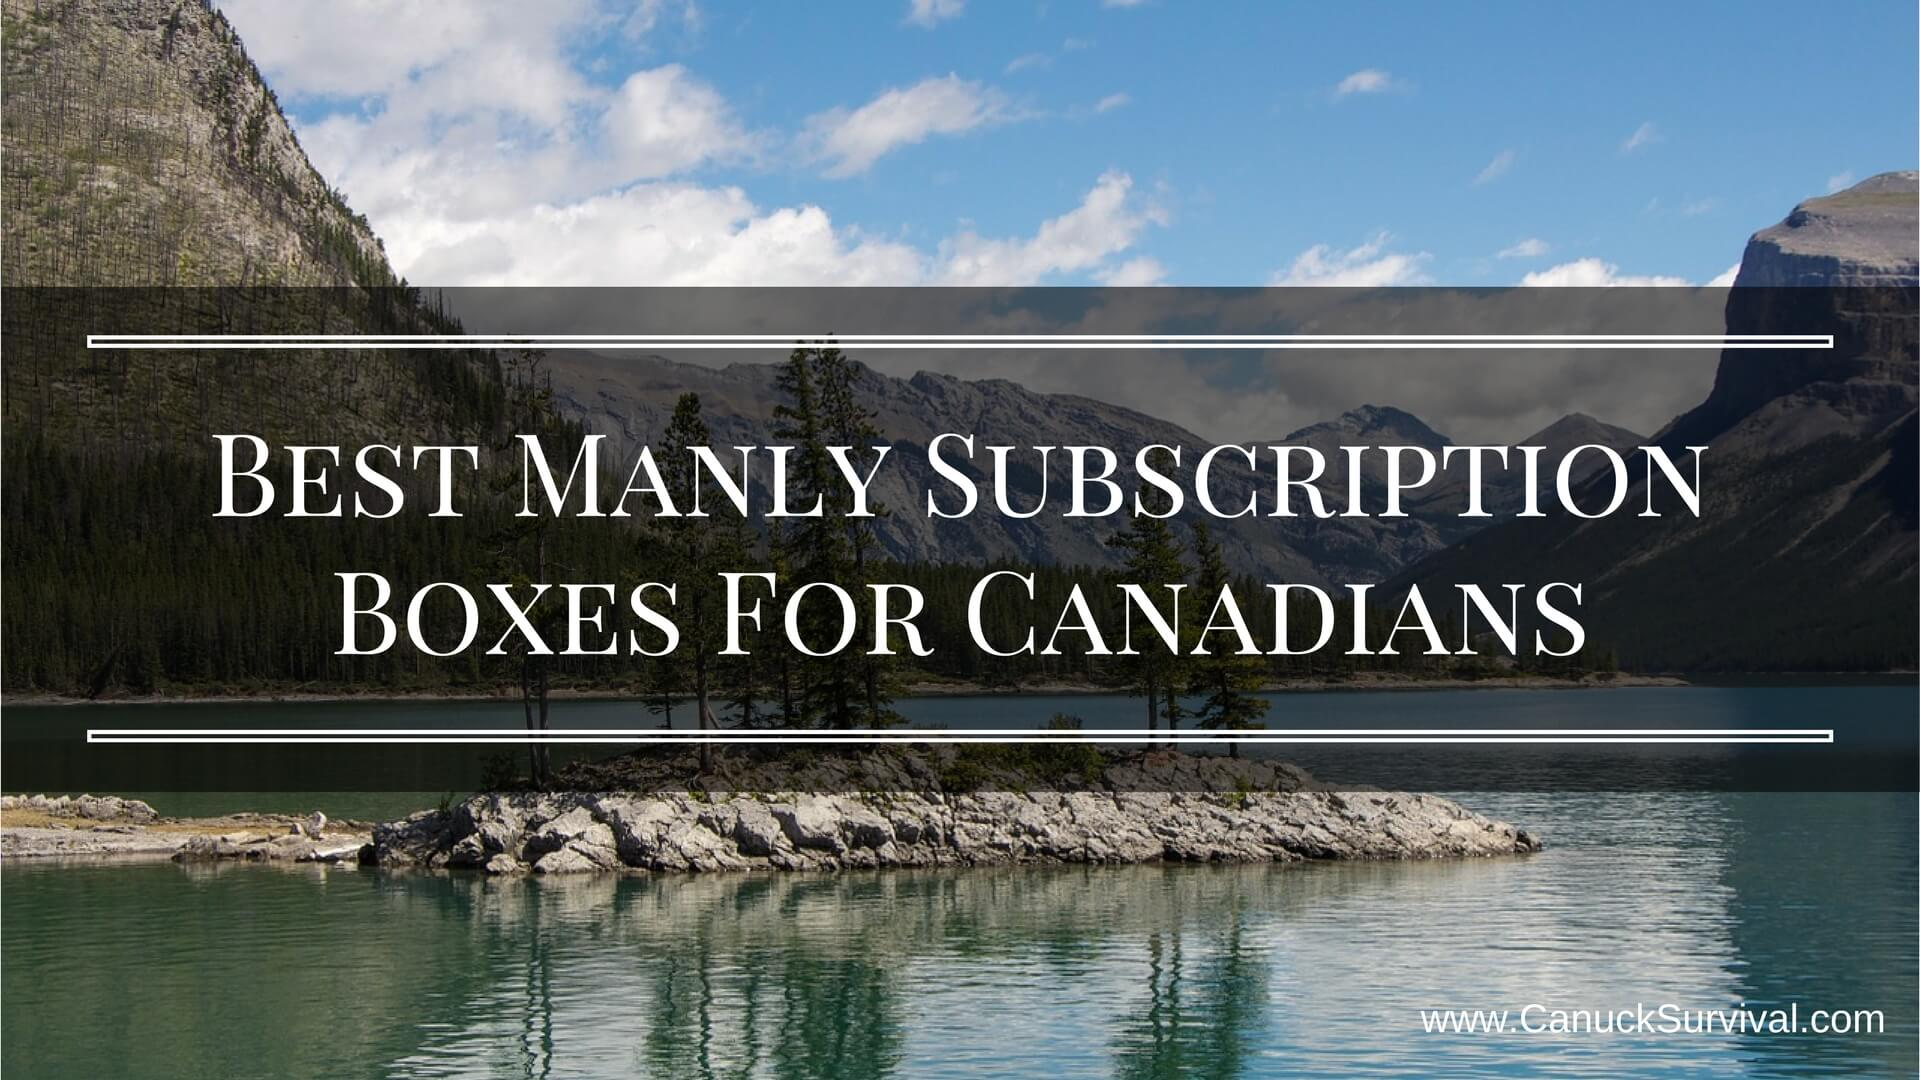 Best Manly Subscription Boxes For Canadians